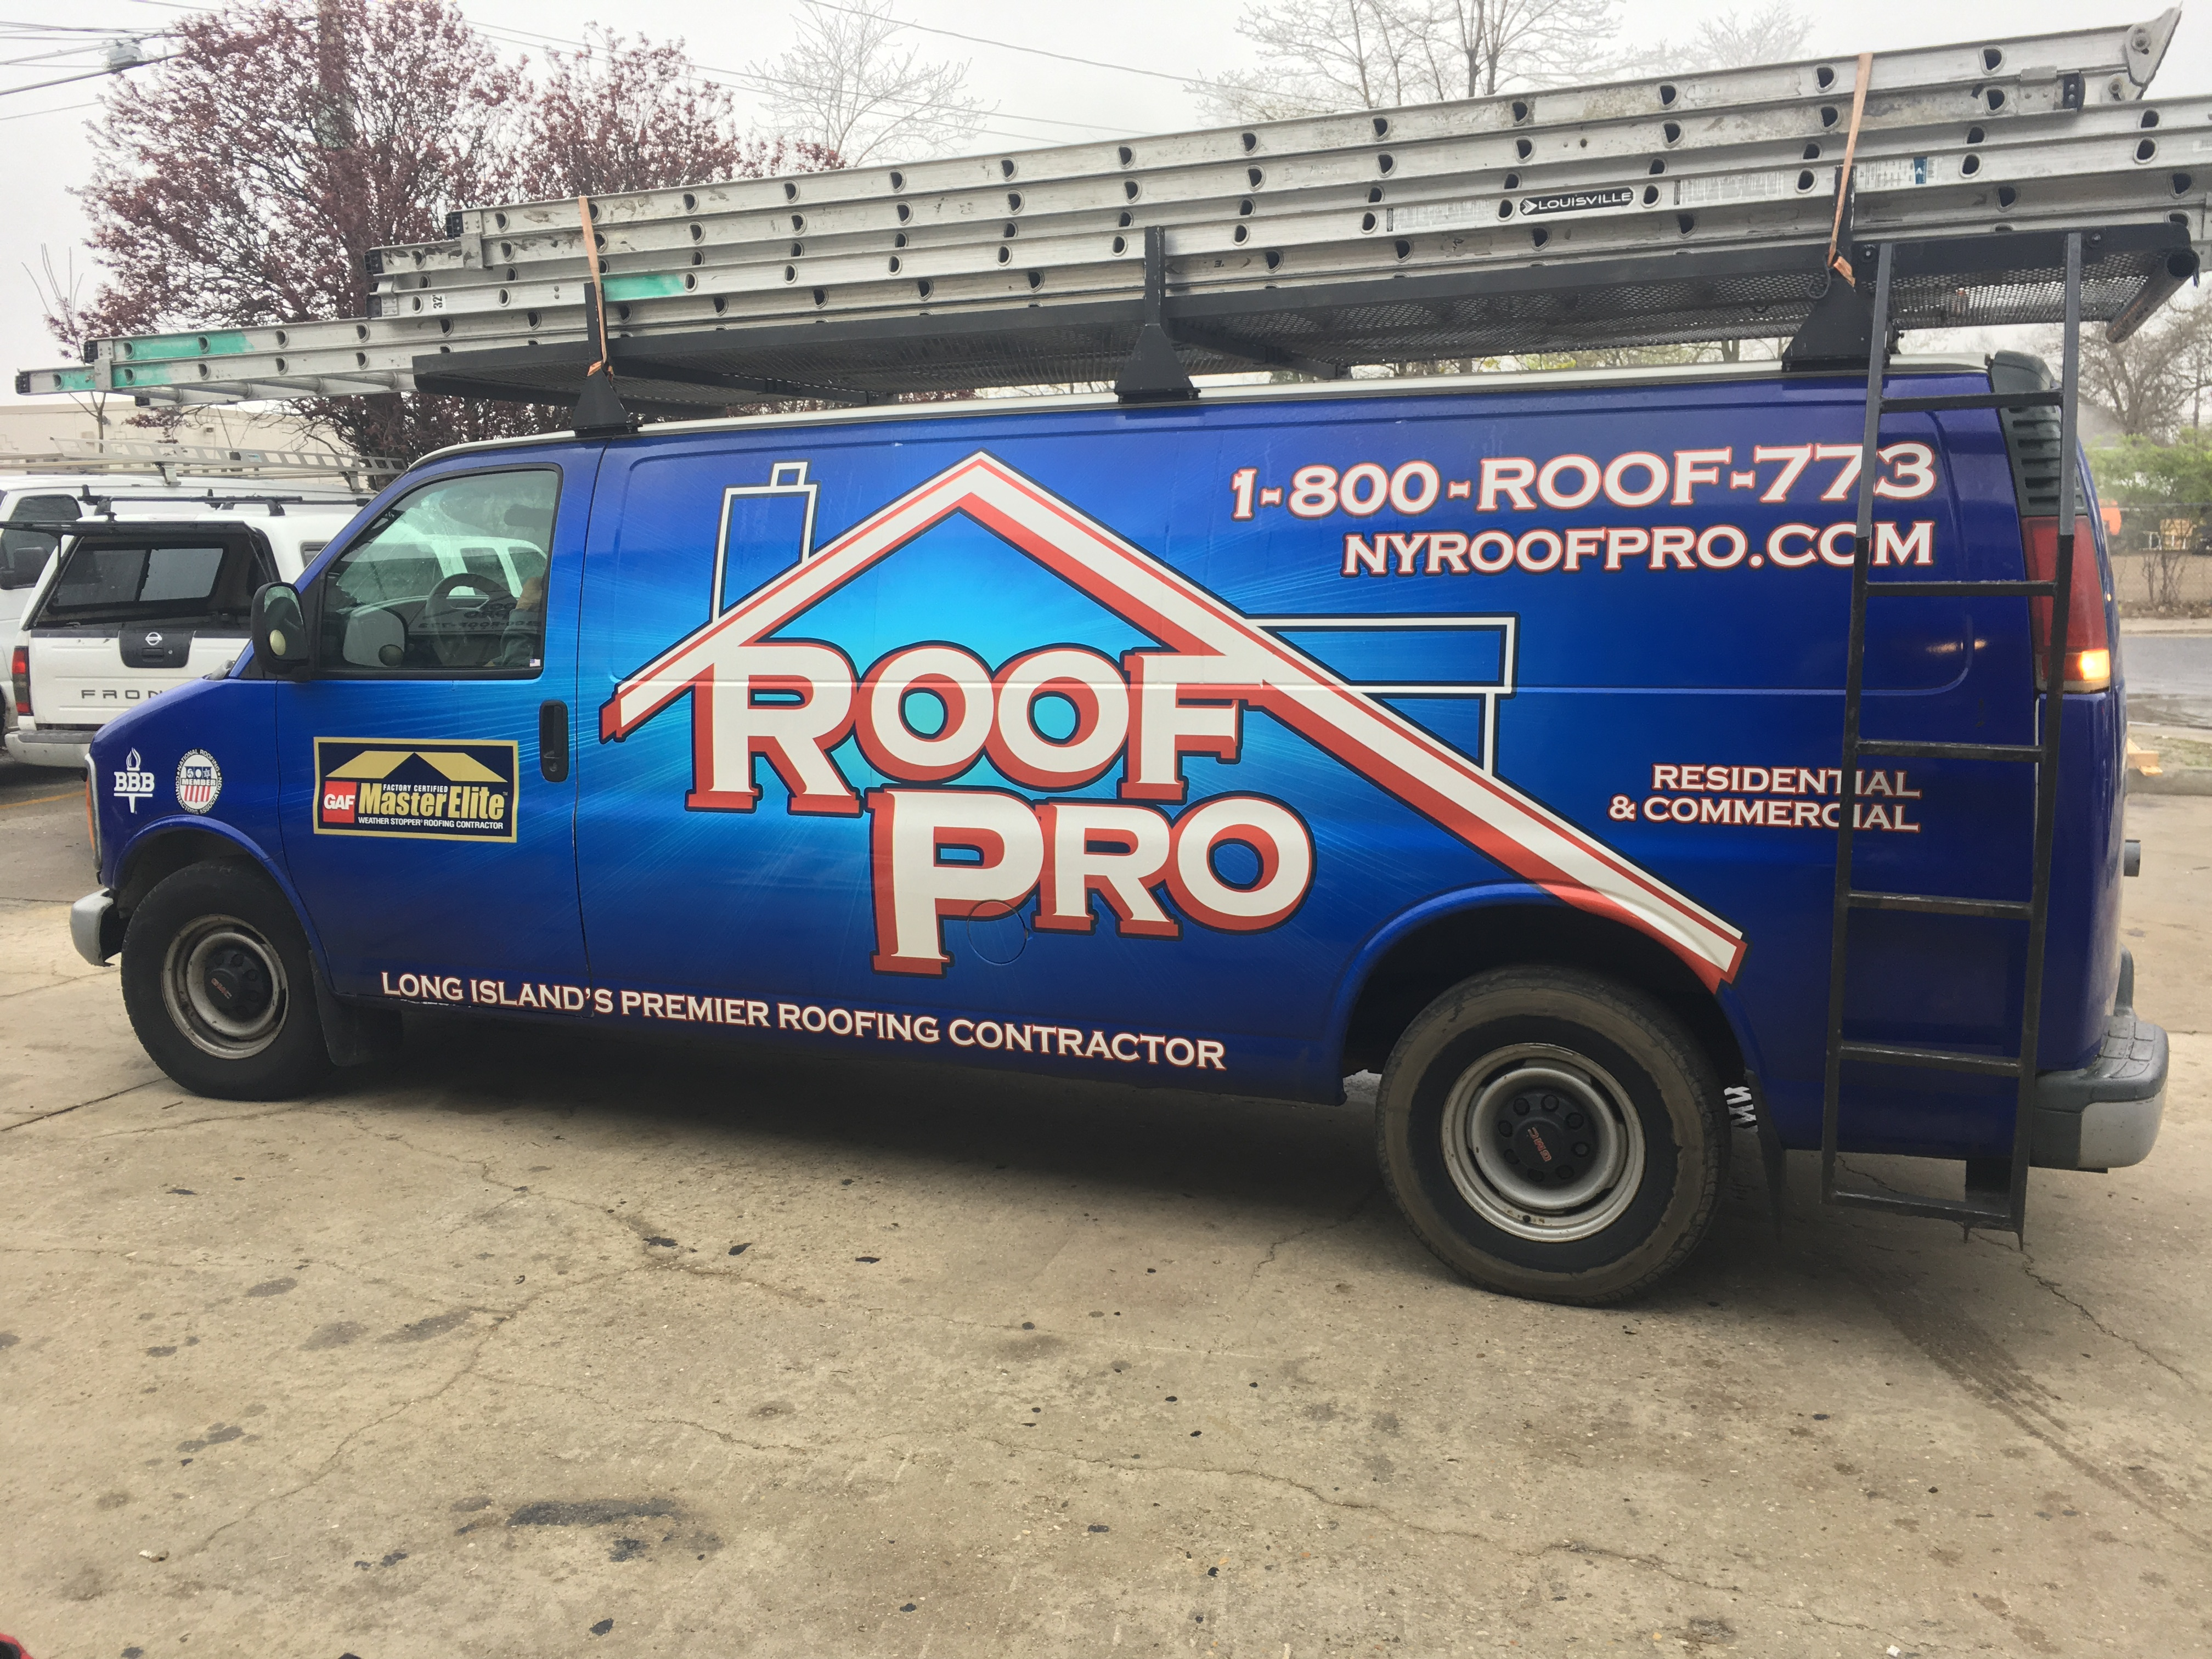 New york suffolk county sayville - We Pull Up With Our Brand New Van Added That S To The Fleet And Start Setting Up The Equipment To Cut Flashing And Siding For The Job At Hand